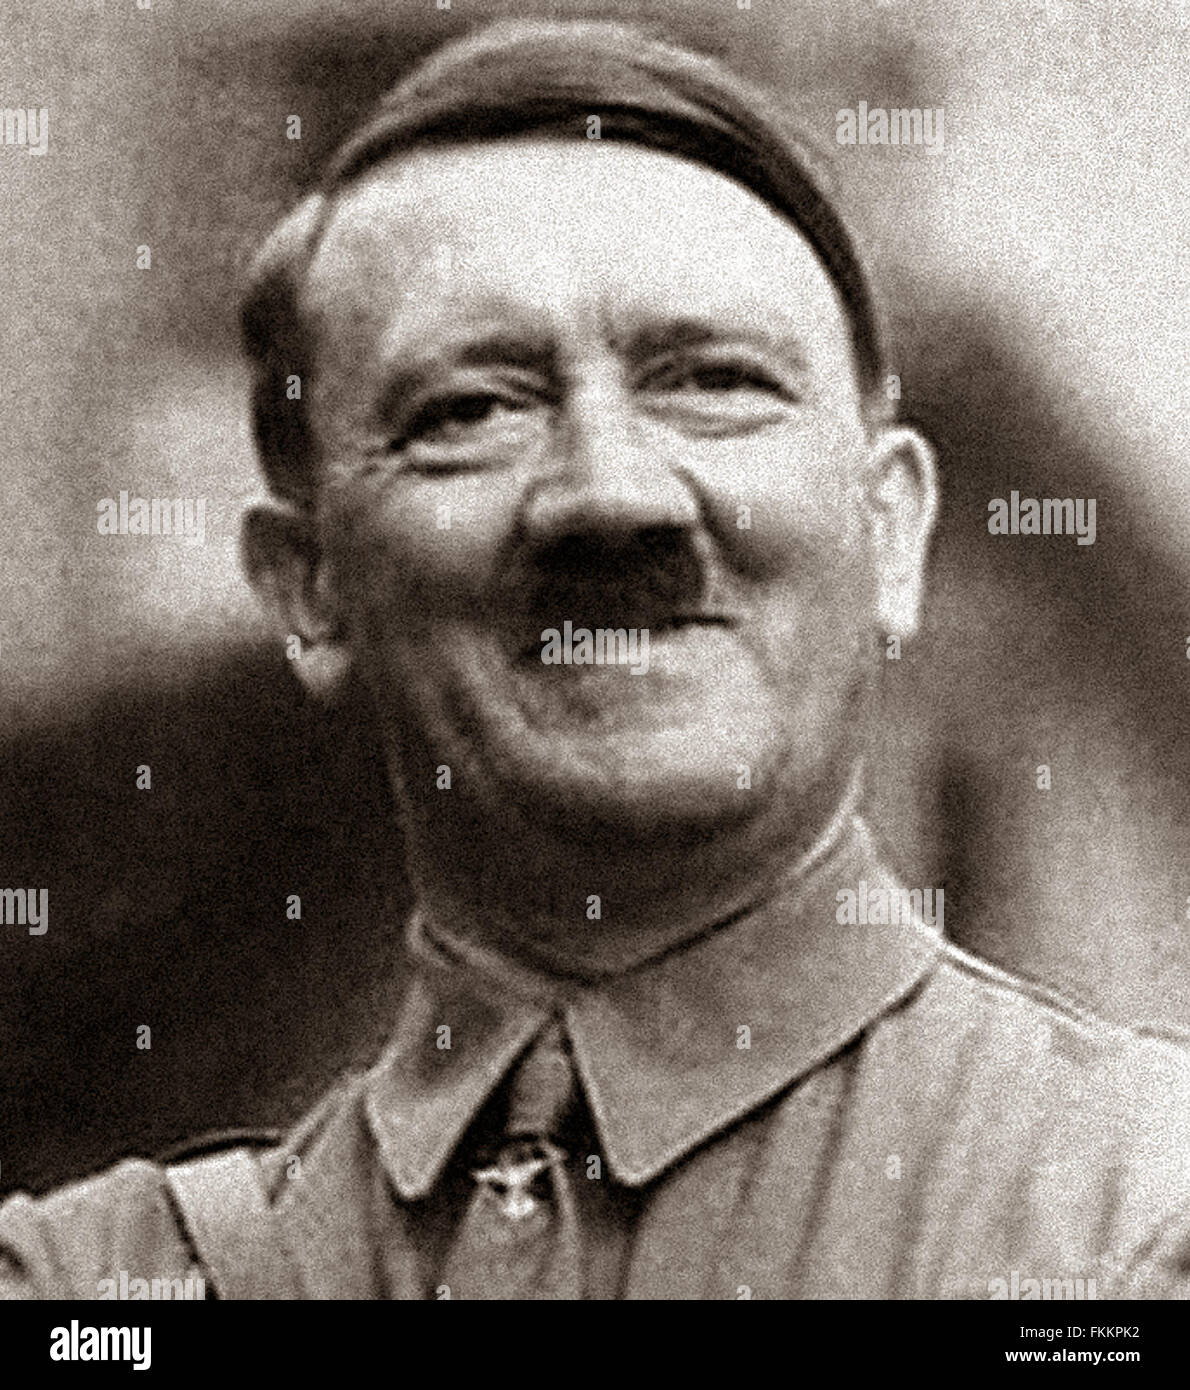 Adolf HITLER - a rare image of the German wartime leader smiling From the archives of Press Portrait Service - formerly - Stock Image